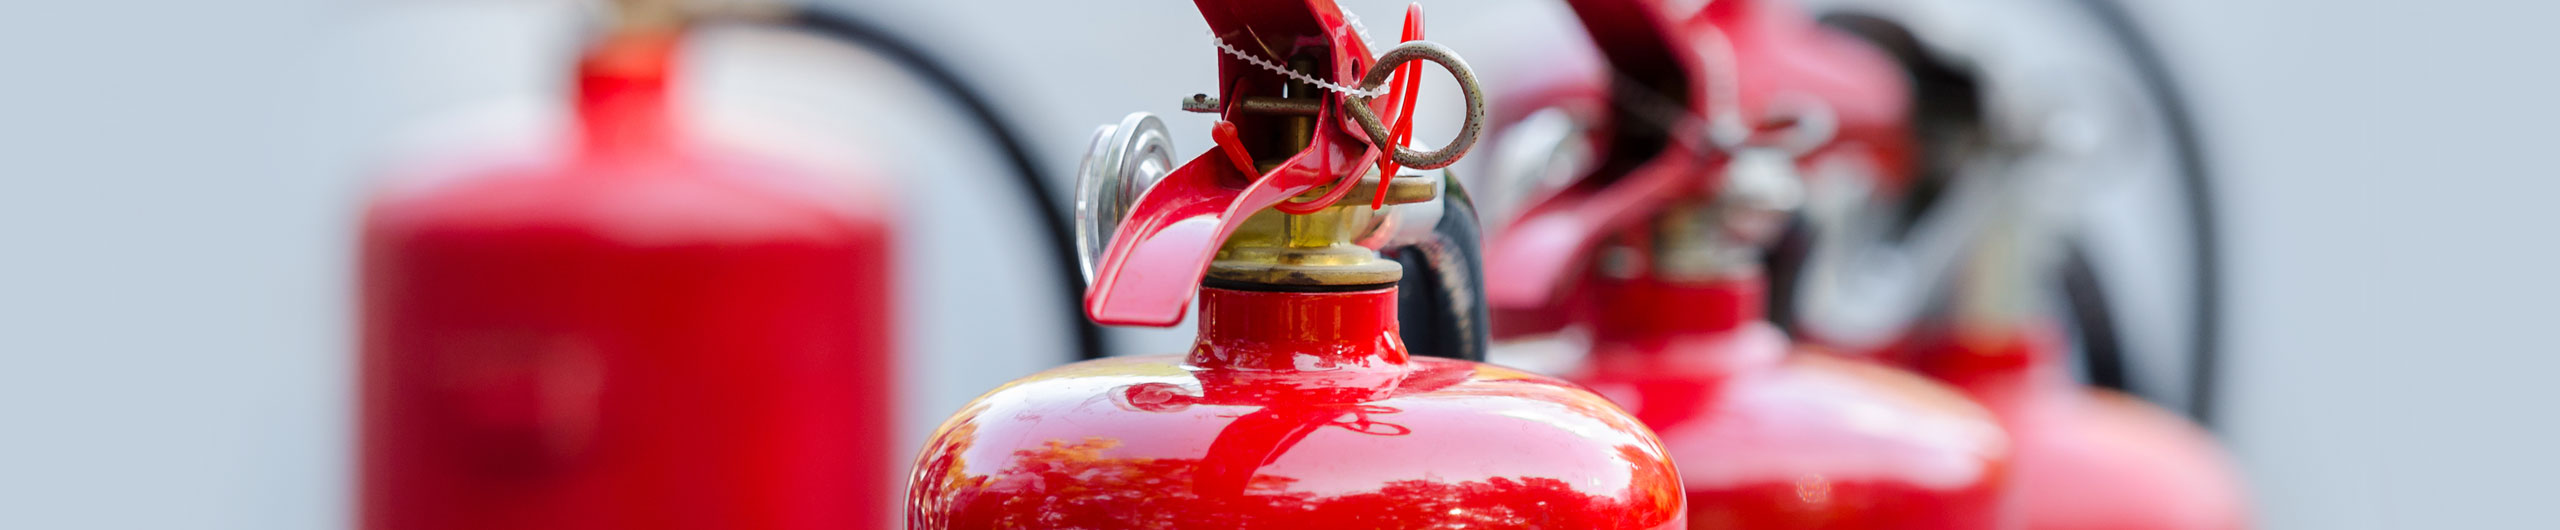 Fire extinguisher service and repair